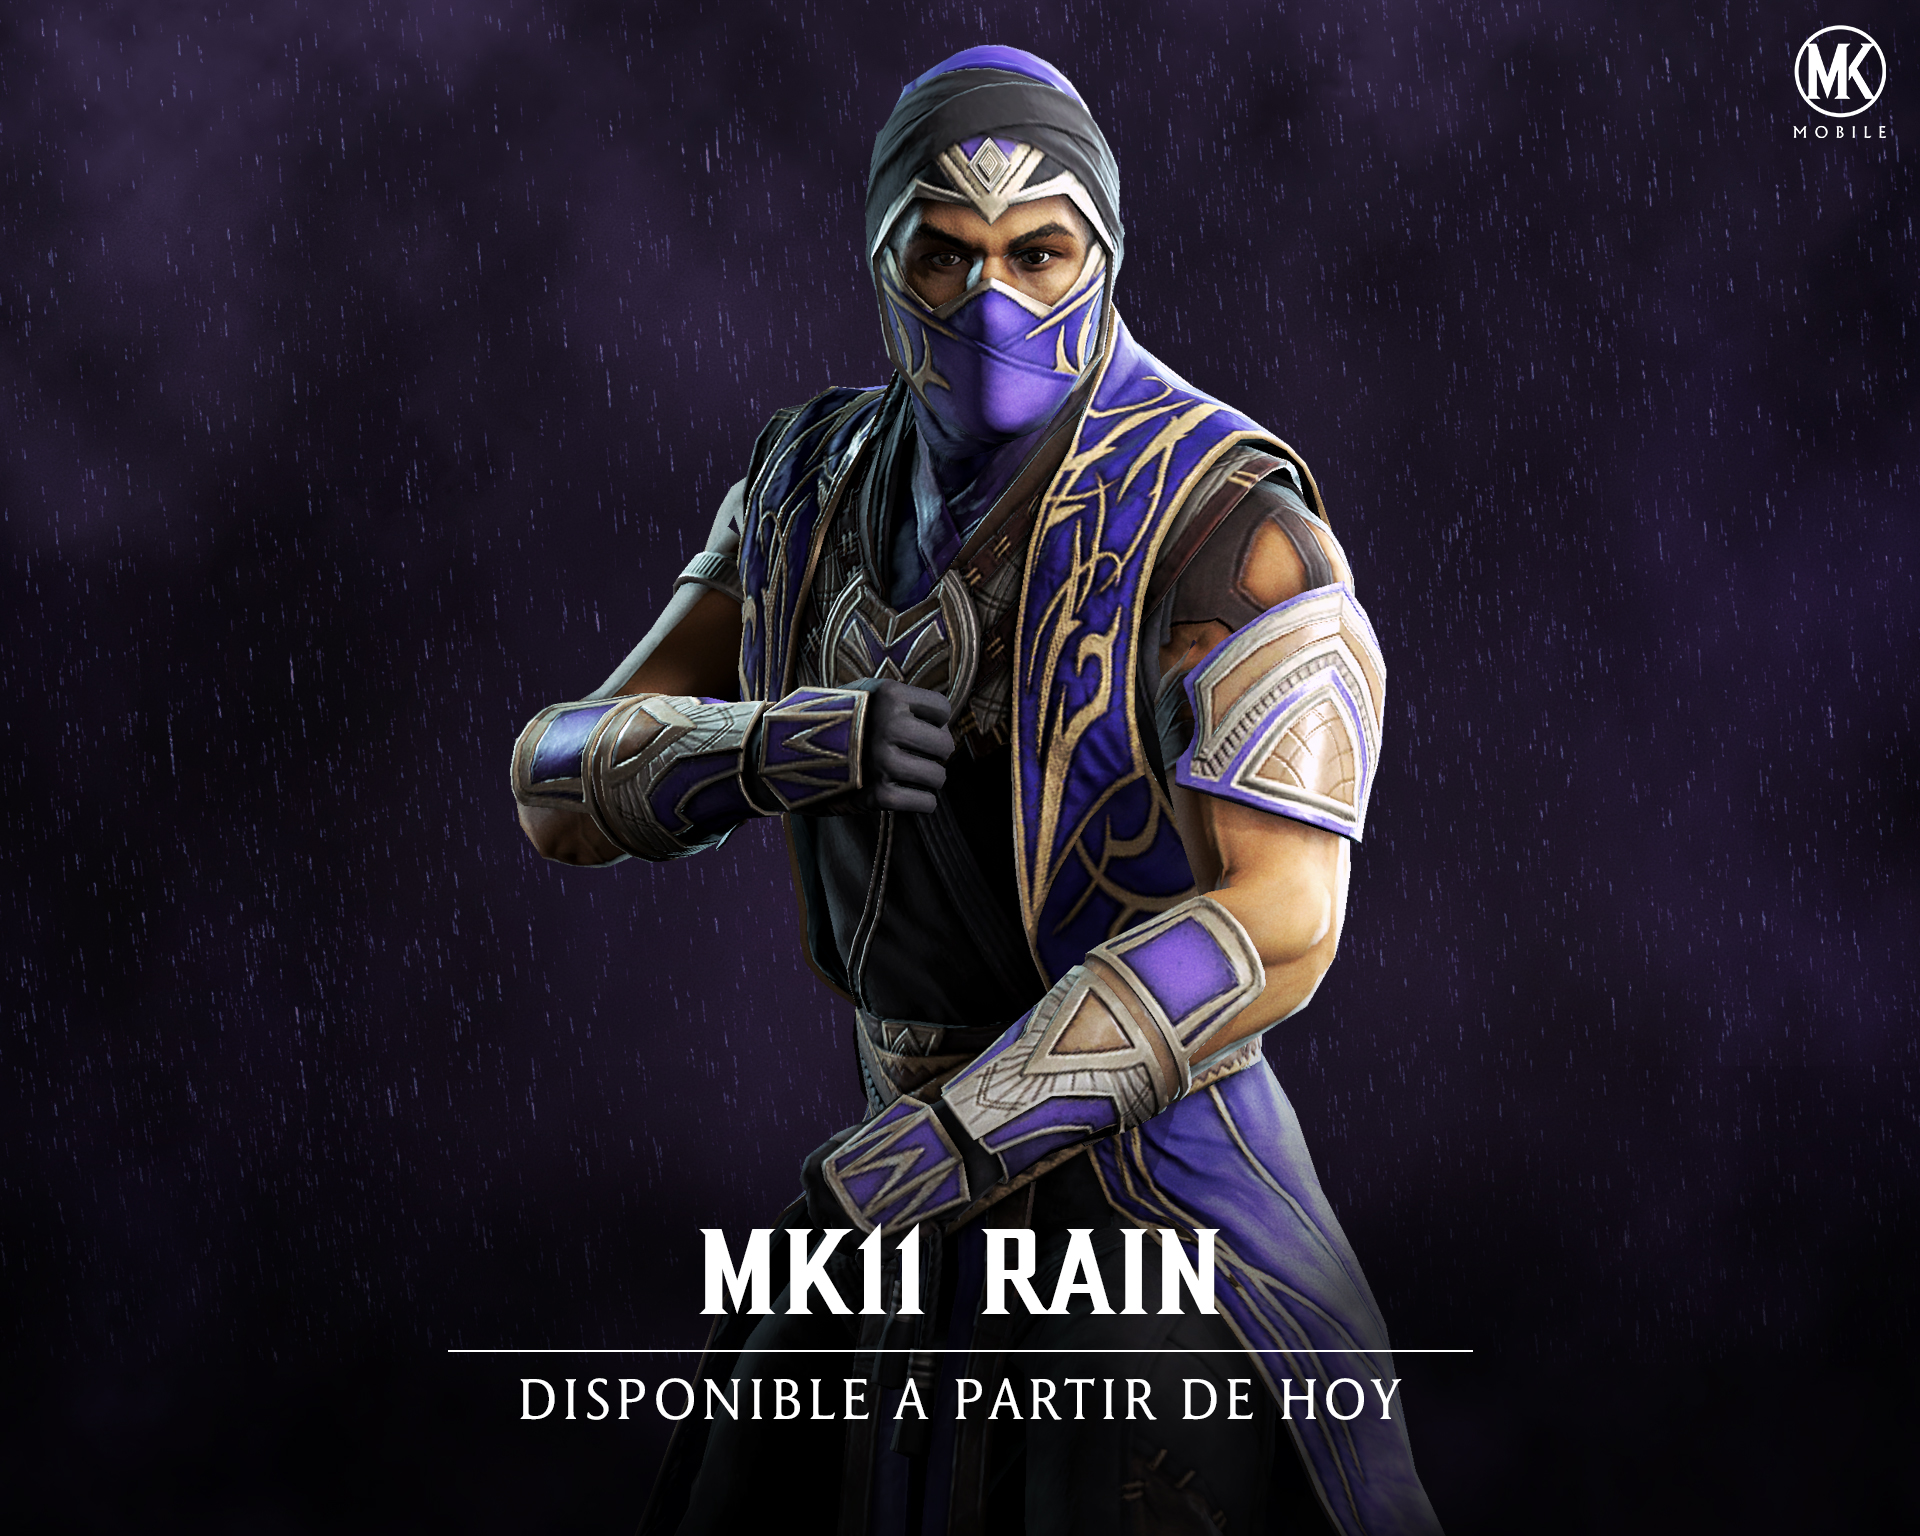 MK11, ultimate, MK ultimate, netherrealm, WB games